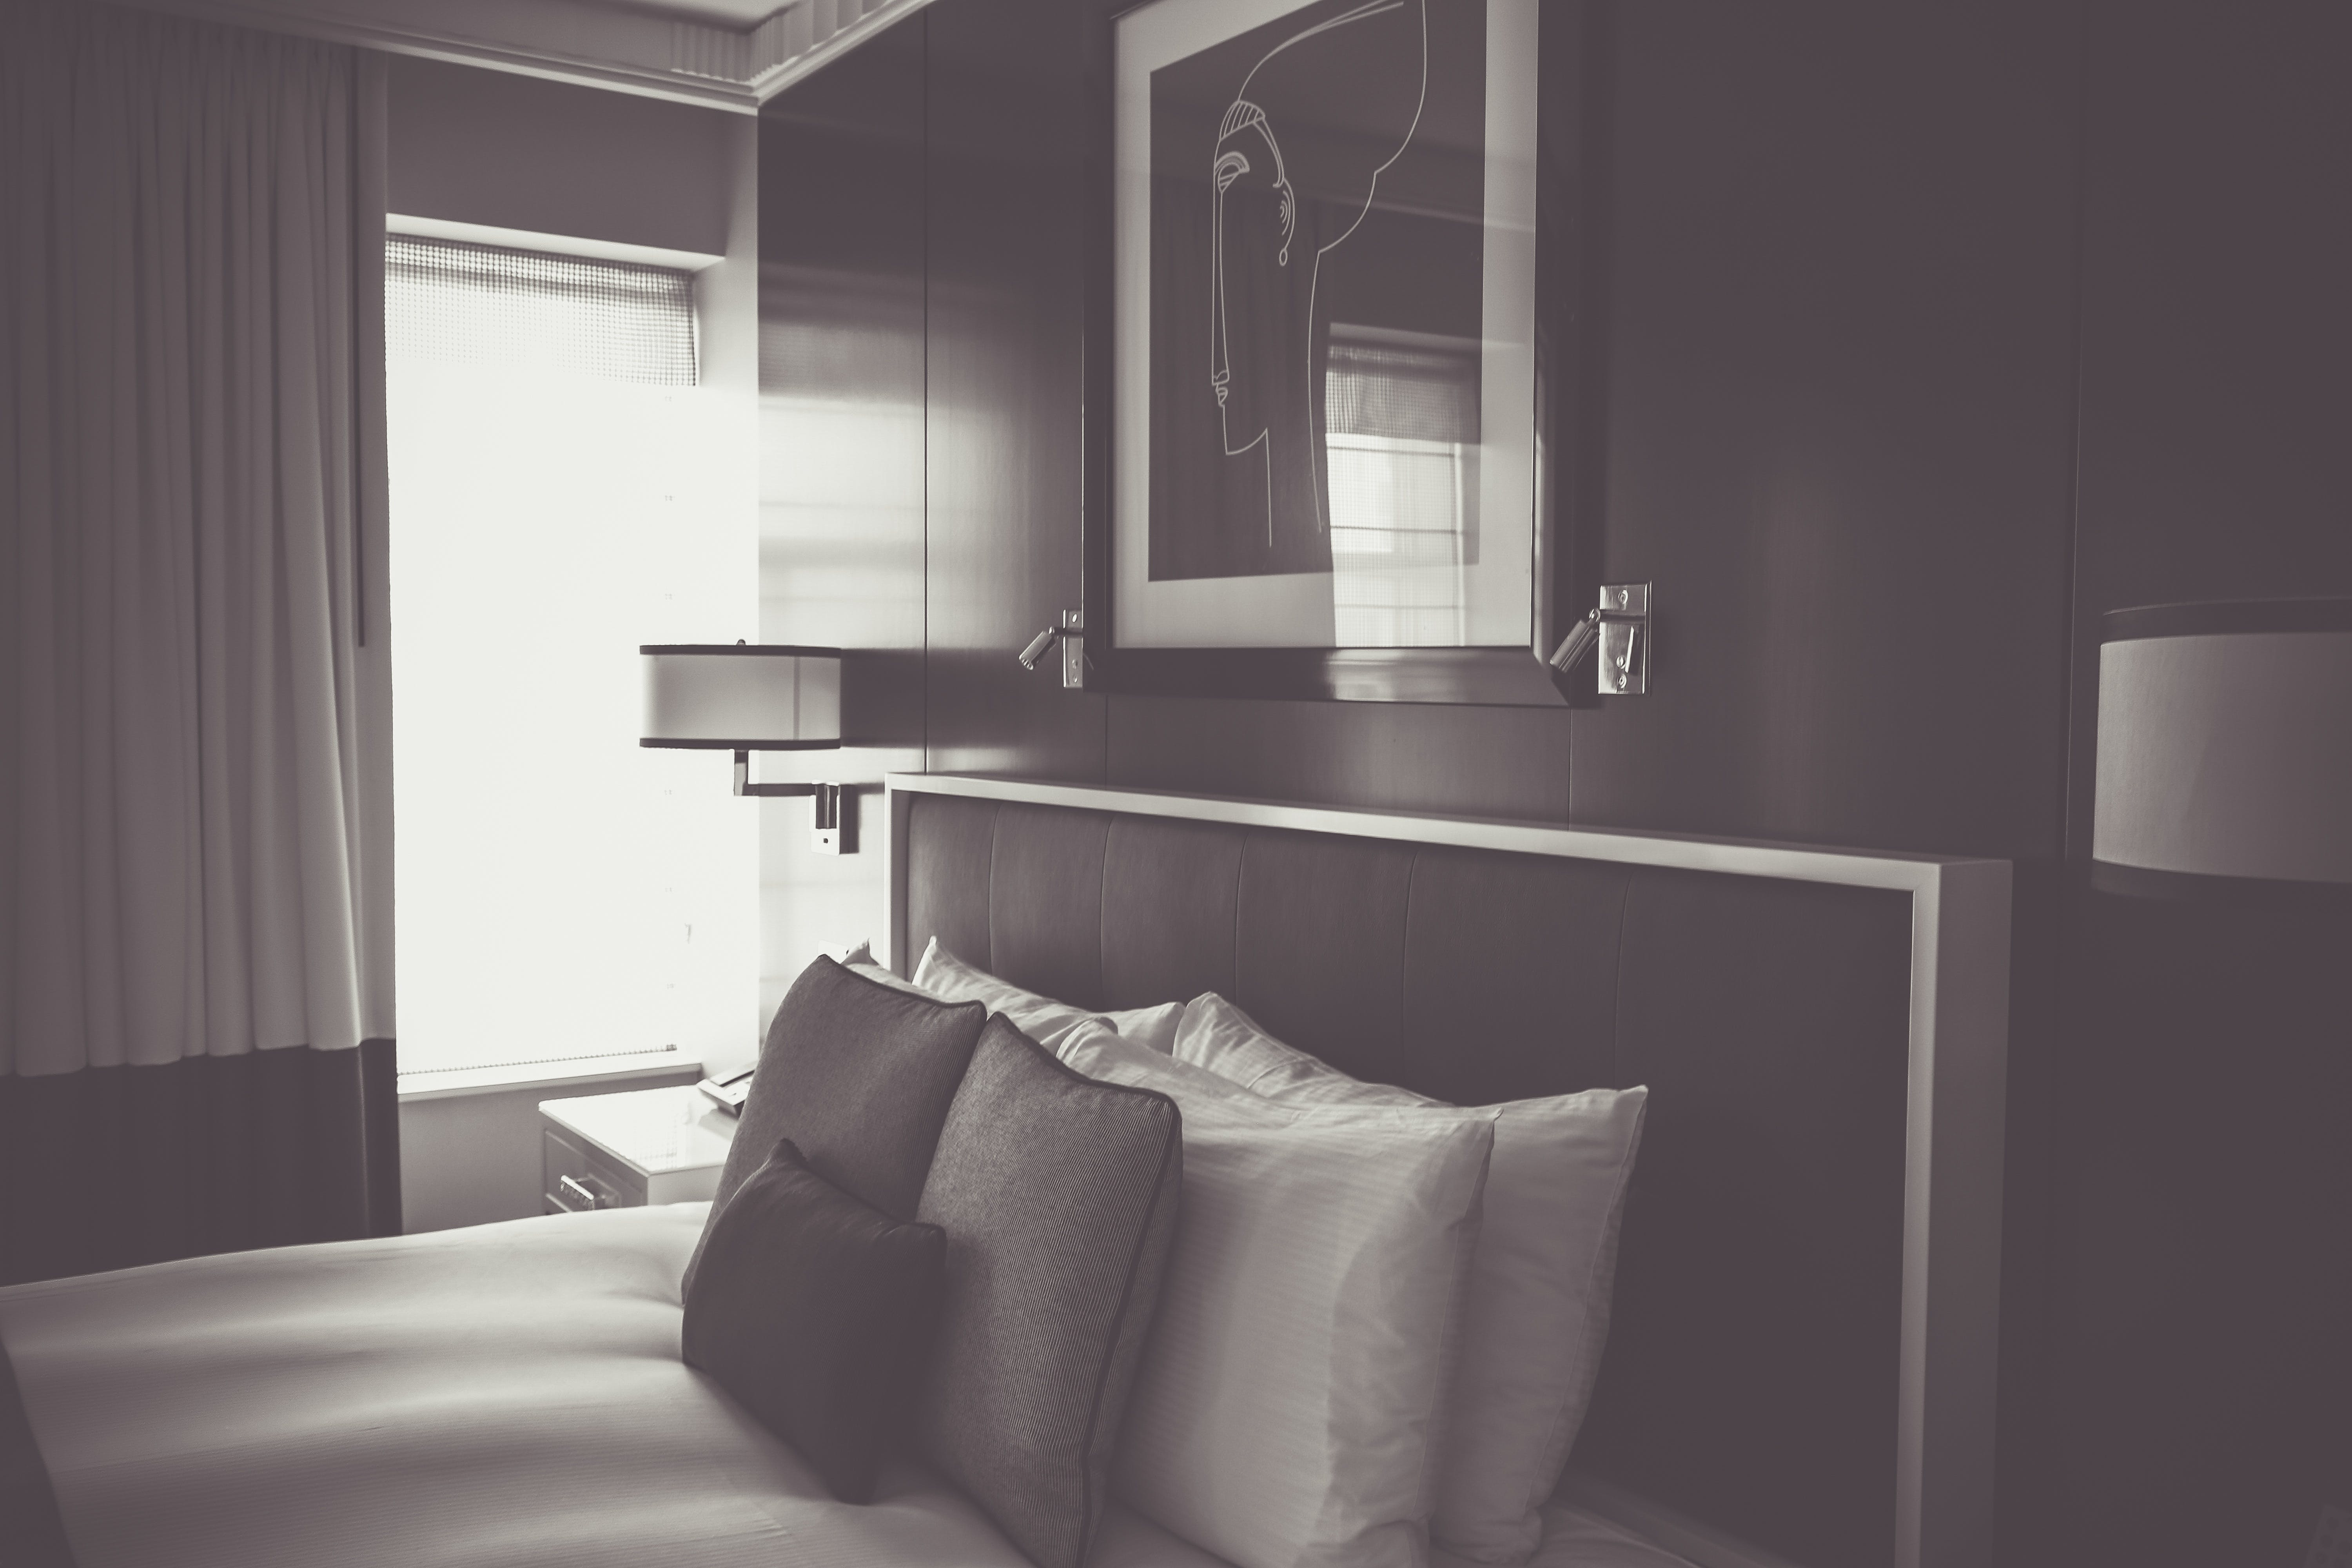 apartment, architecture, bed